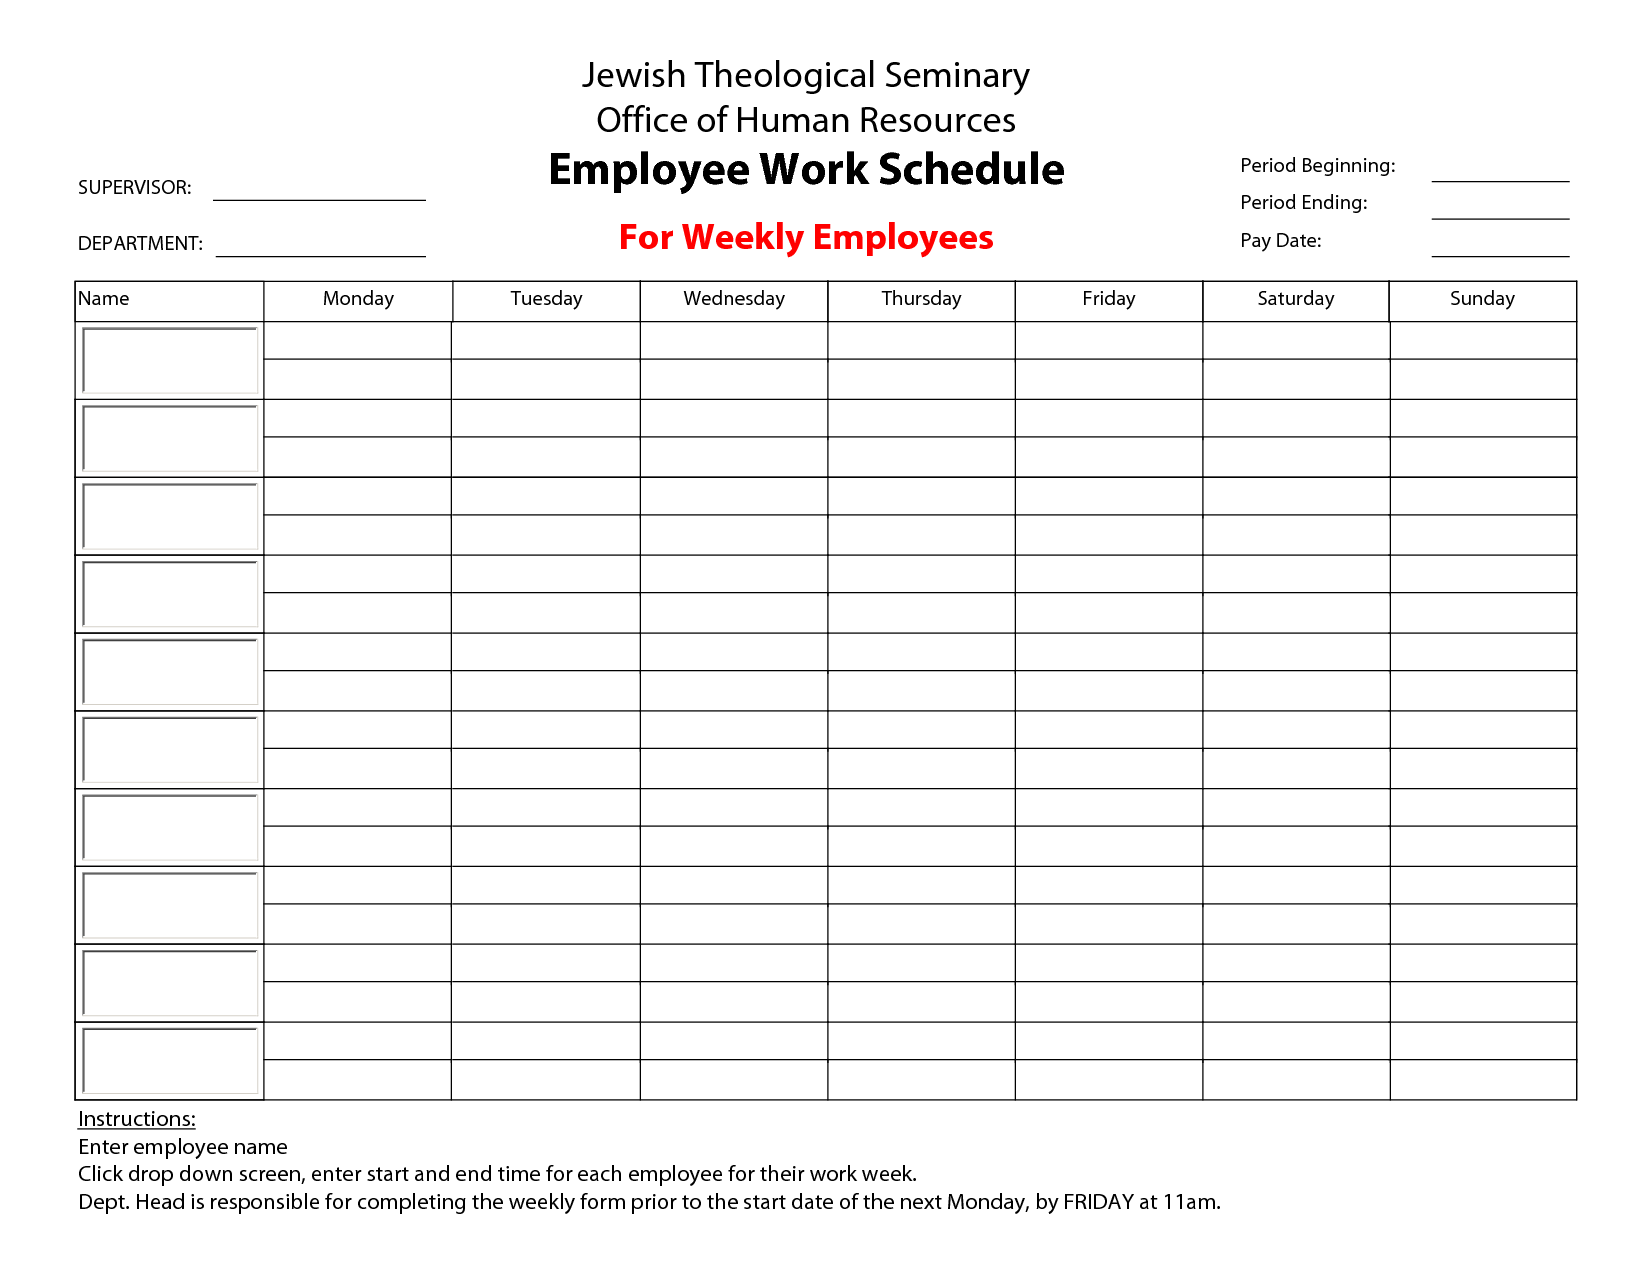 20 hour work week template employee work schedule for weekly 20 hour work week template employee work schedule for weekly employees print form jewish pronofoot35fo Choice Image